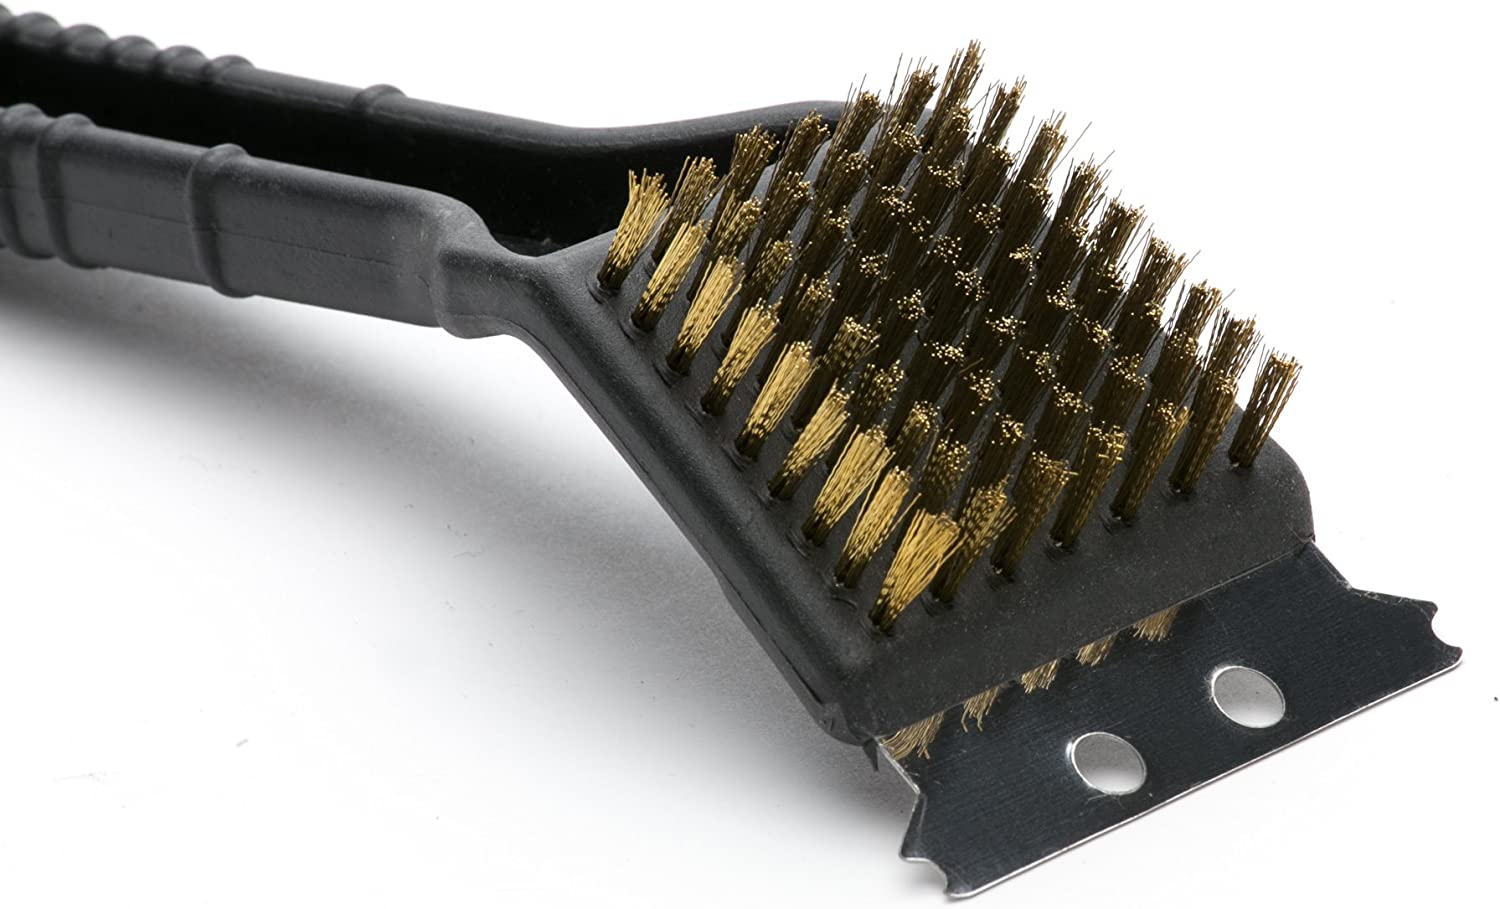 Outset QP47 Short Plastic Grill Brush with Scraper